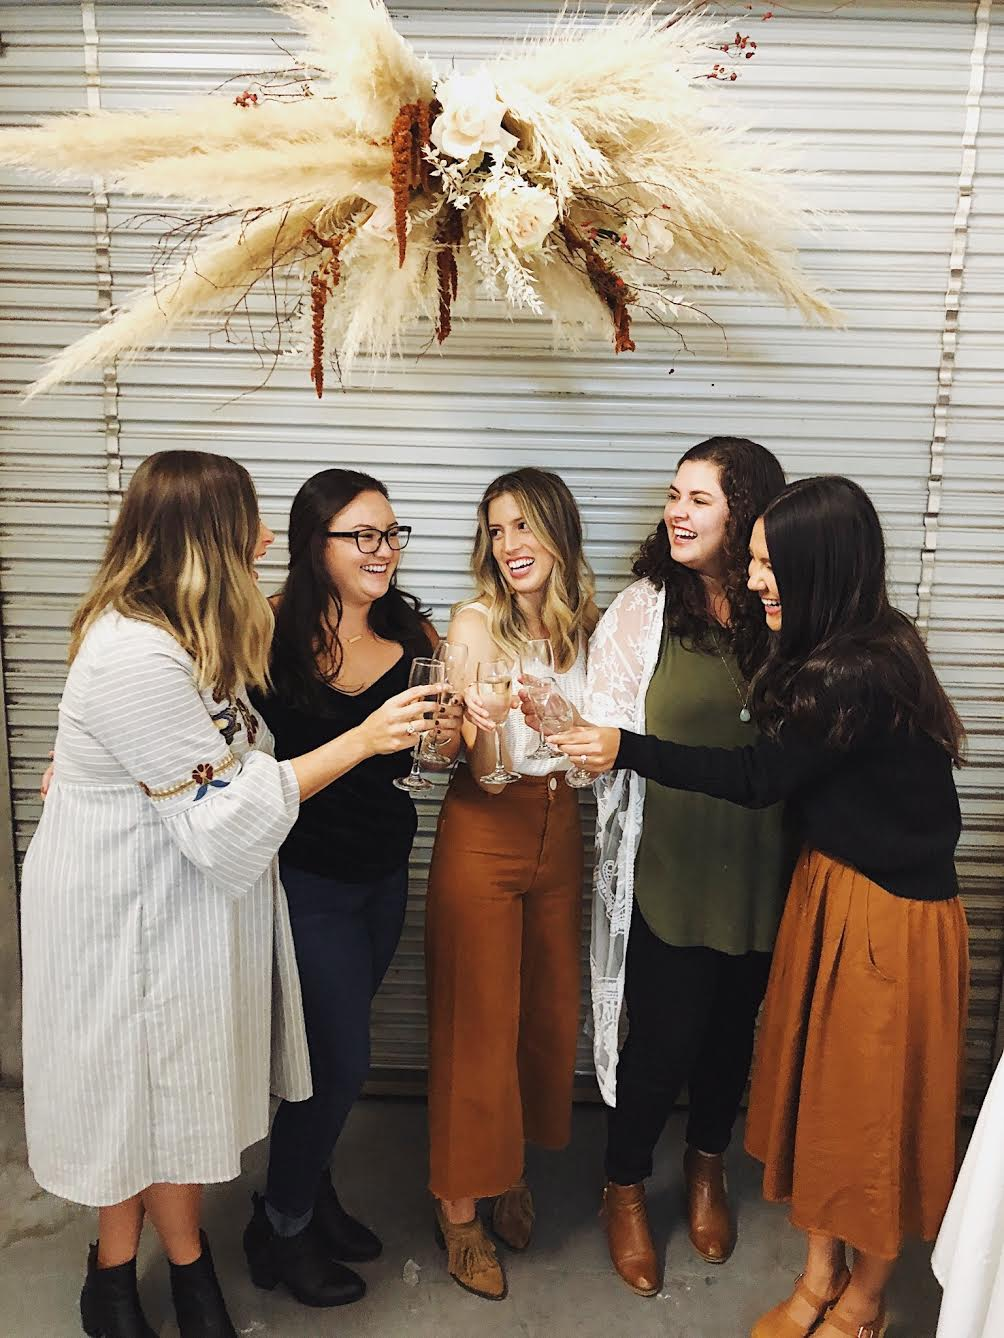 Behind The Scenes: Our Friendsgiving